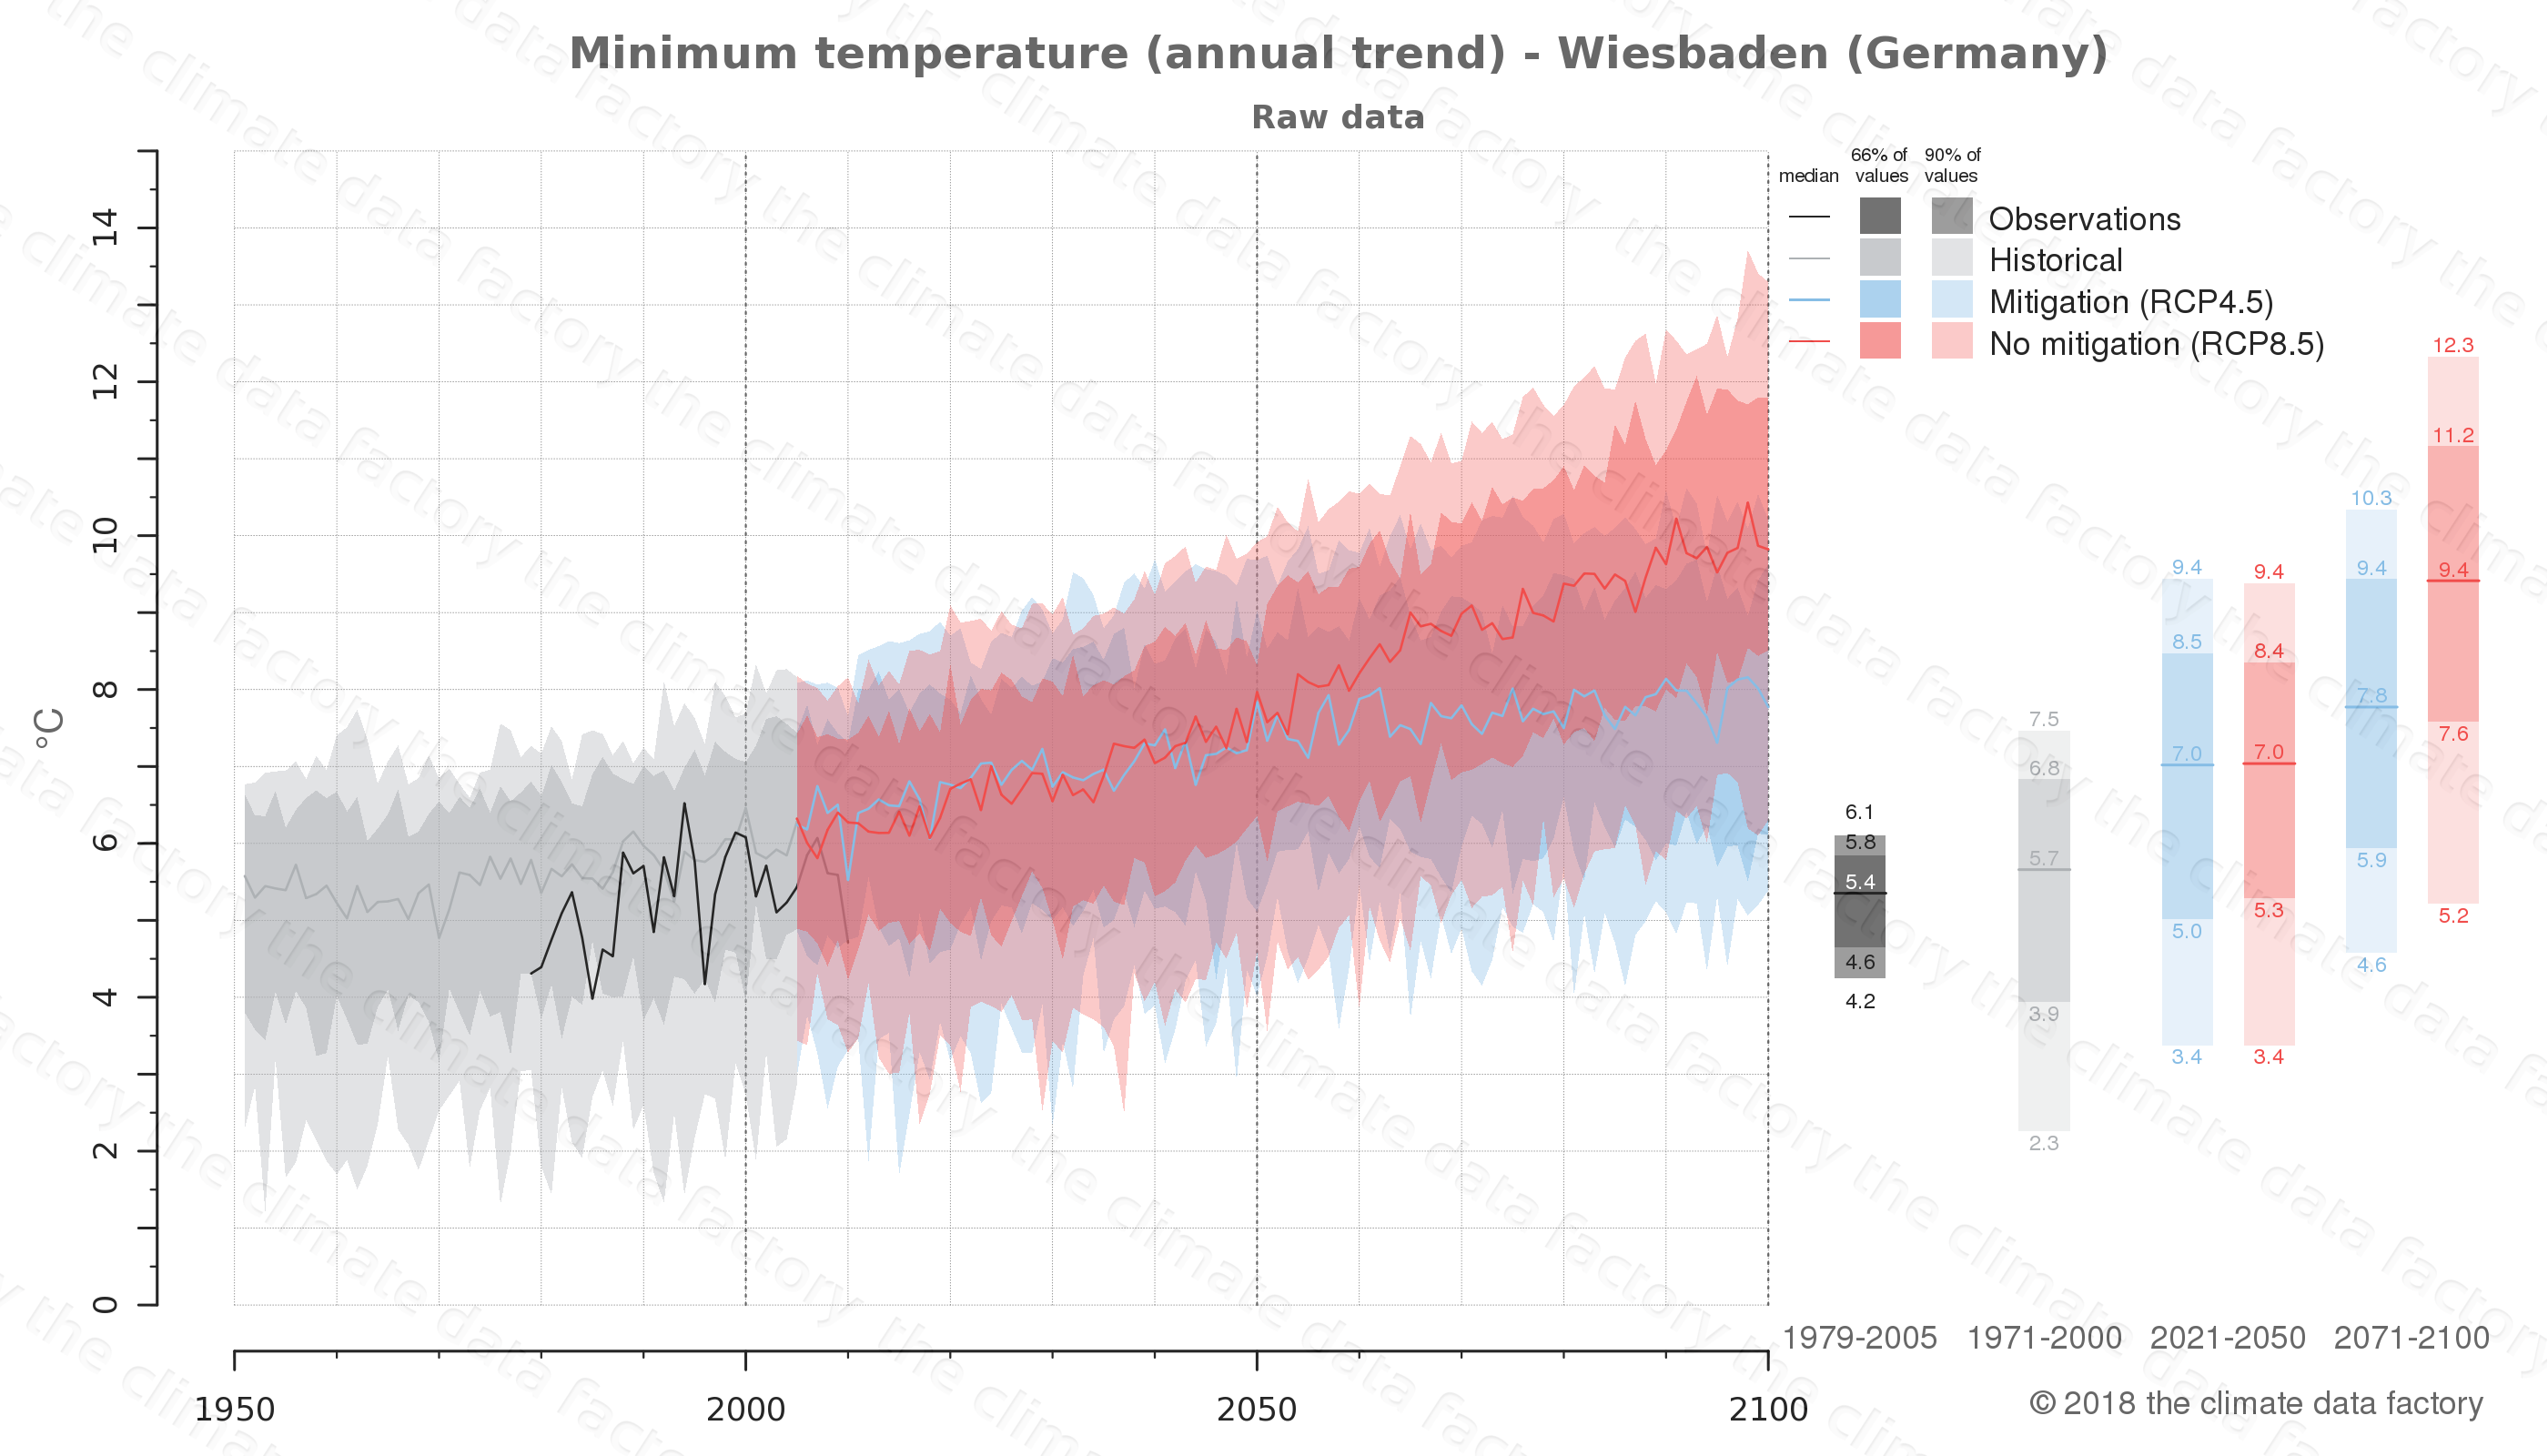 climate change data policy adaptation climate graph city data minimum-temperature wiesbaden germany